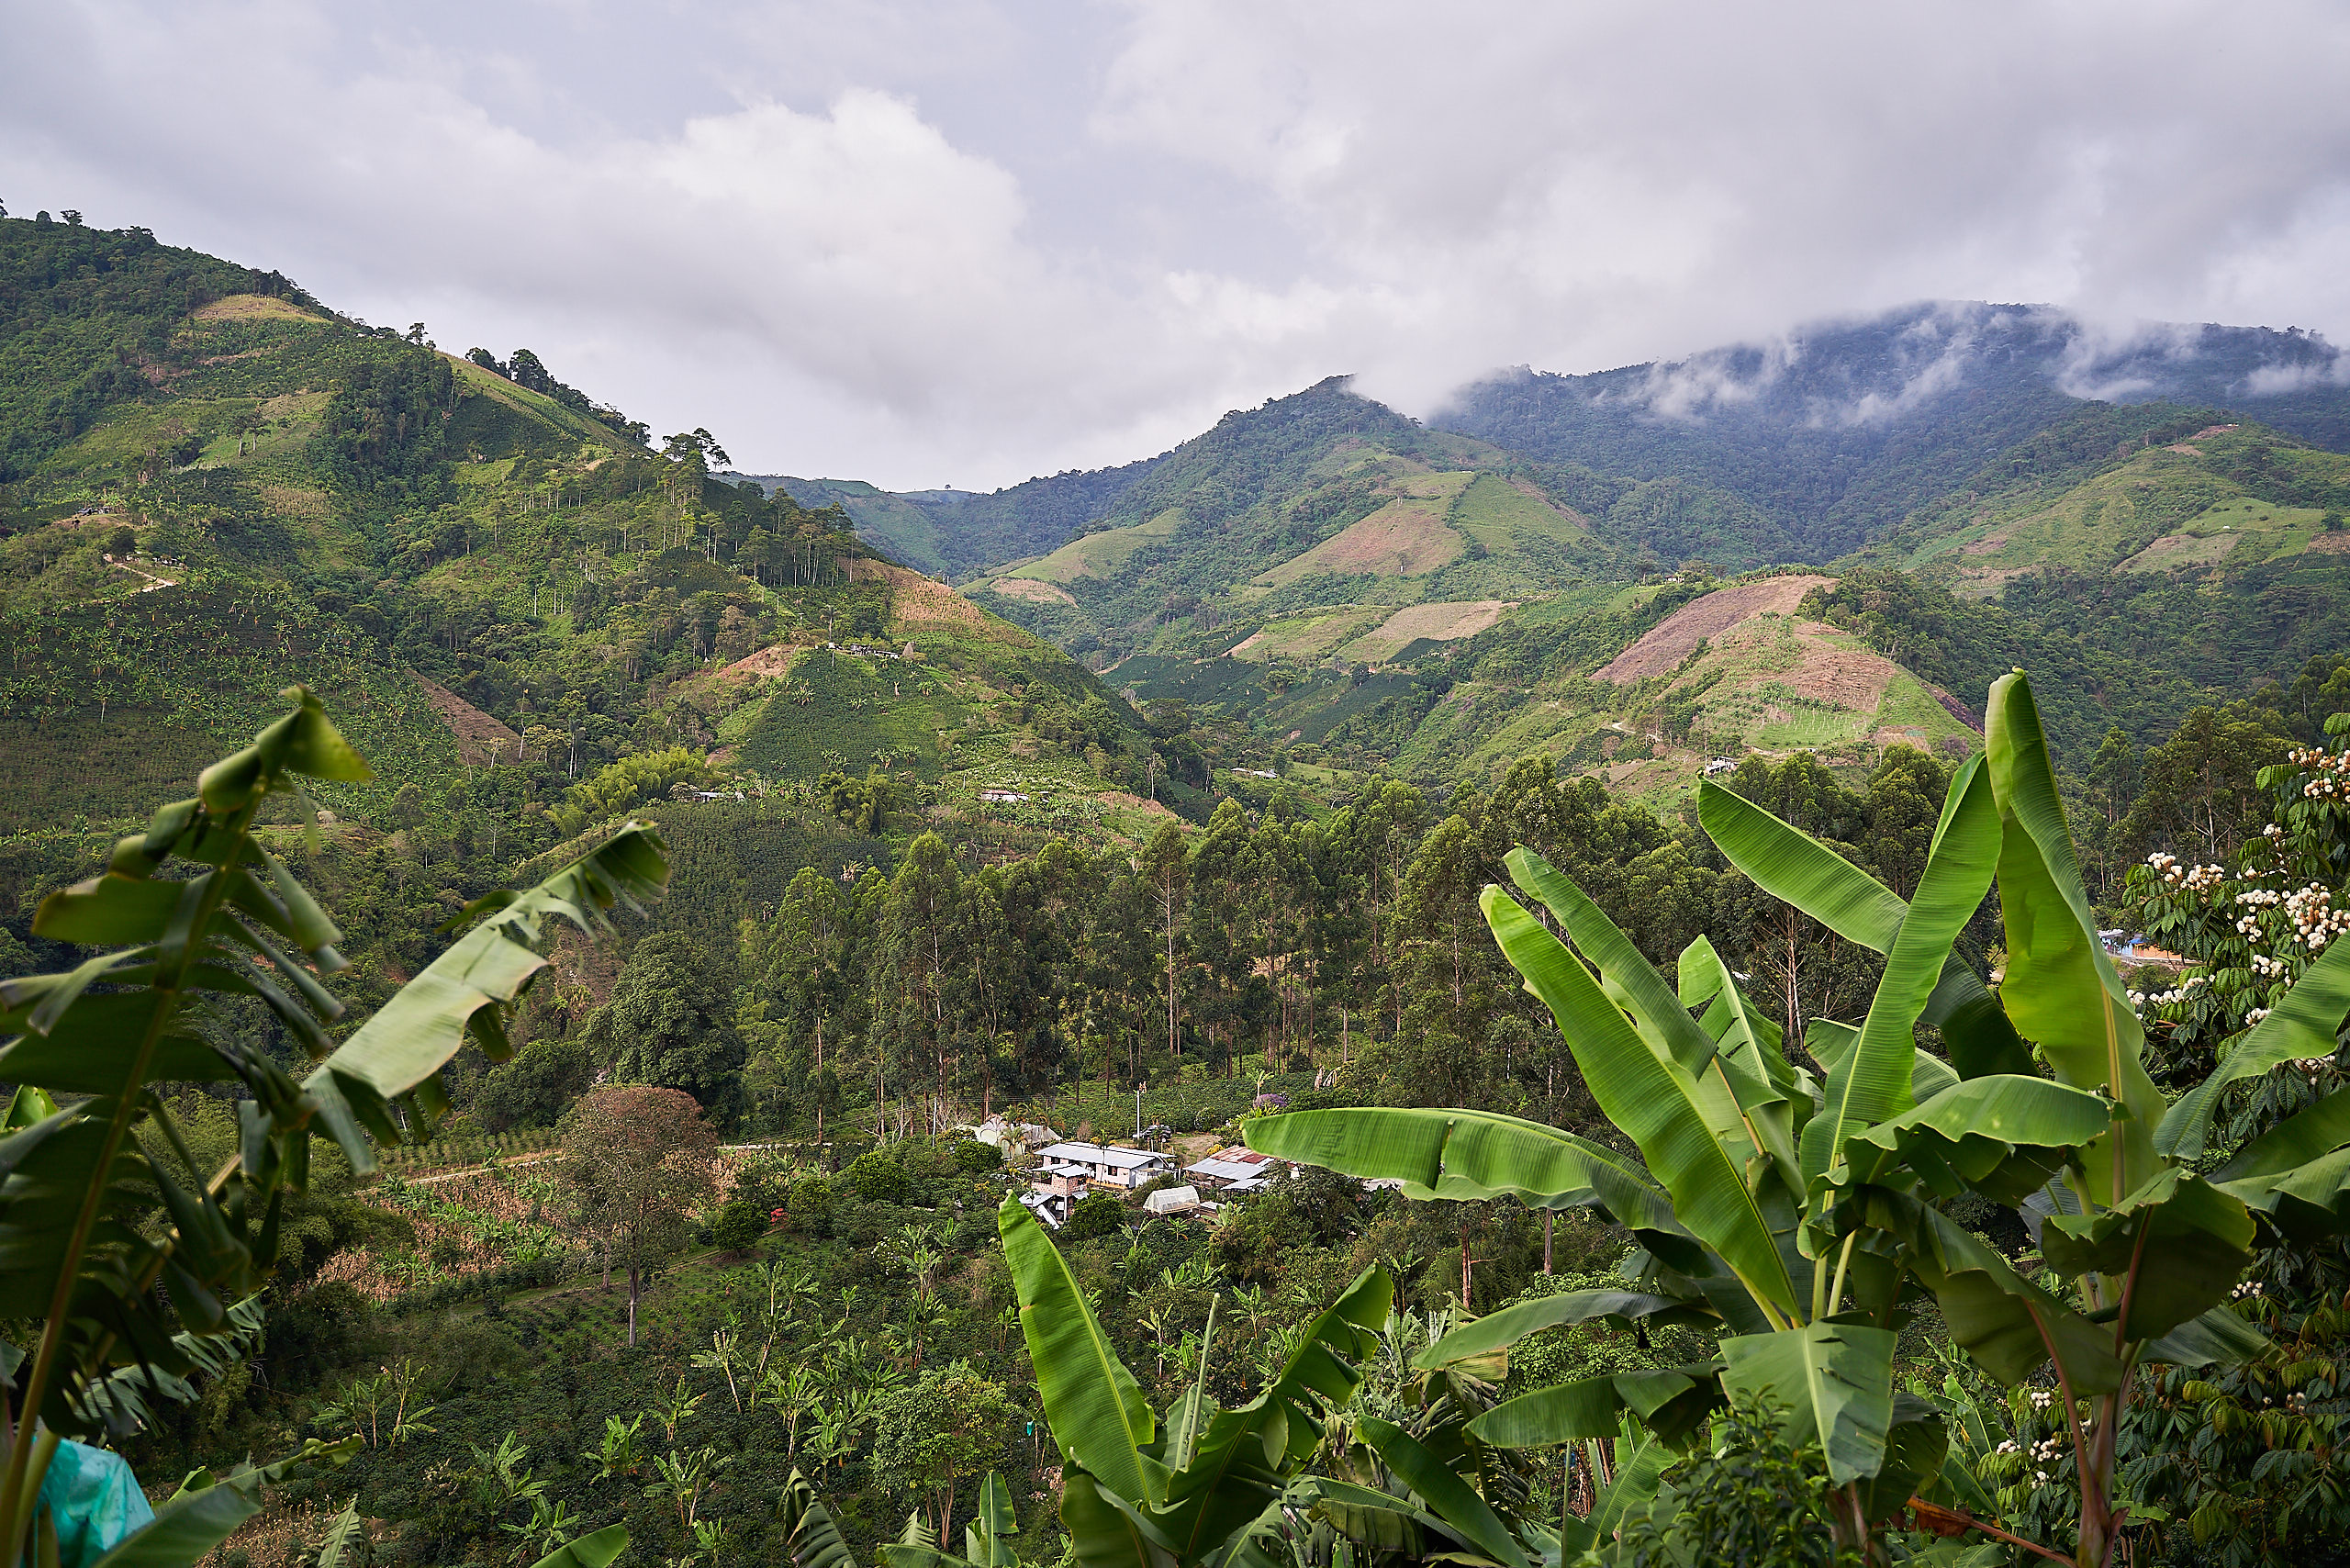 The El Prado farm situated beautifully in the hills of Huila